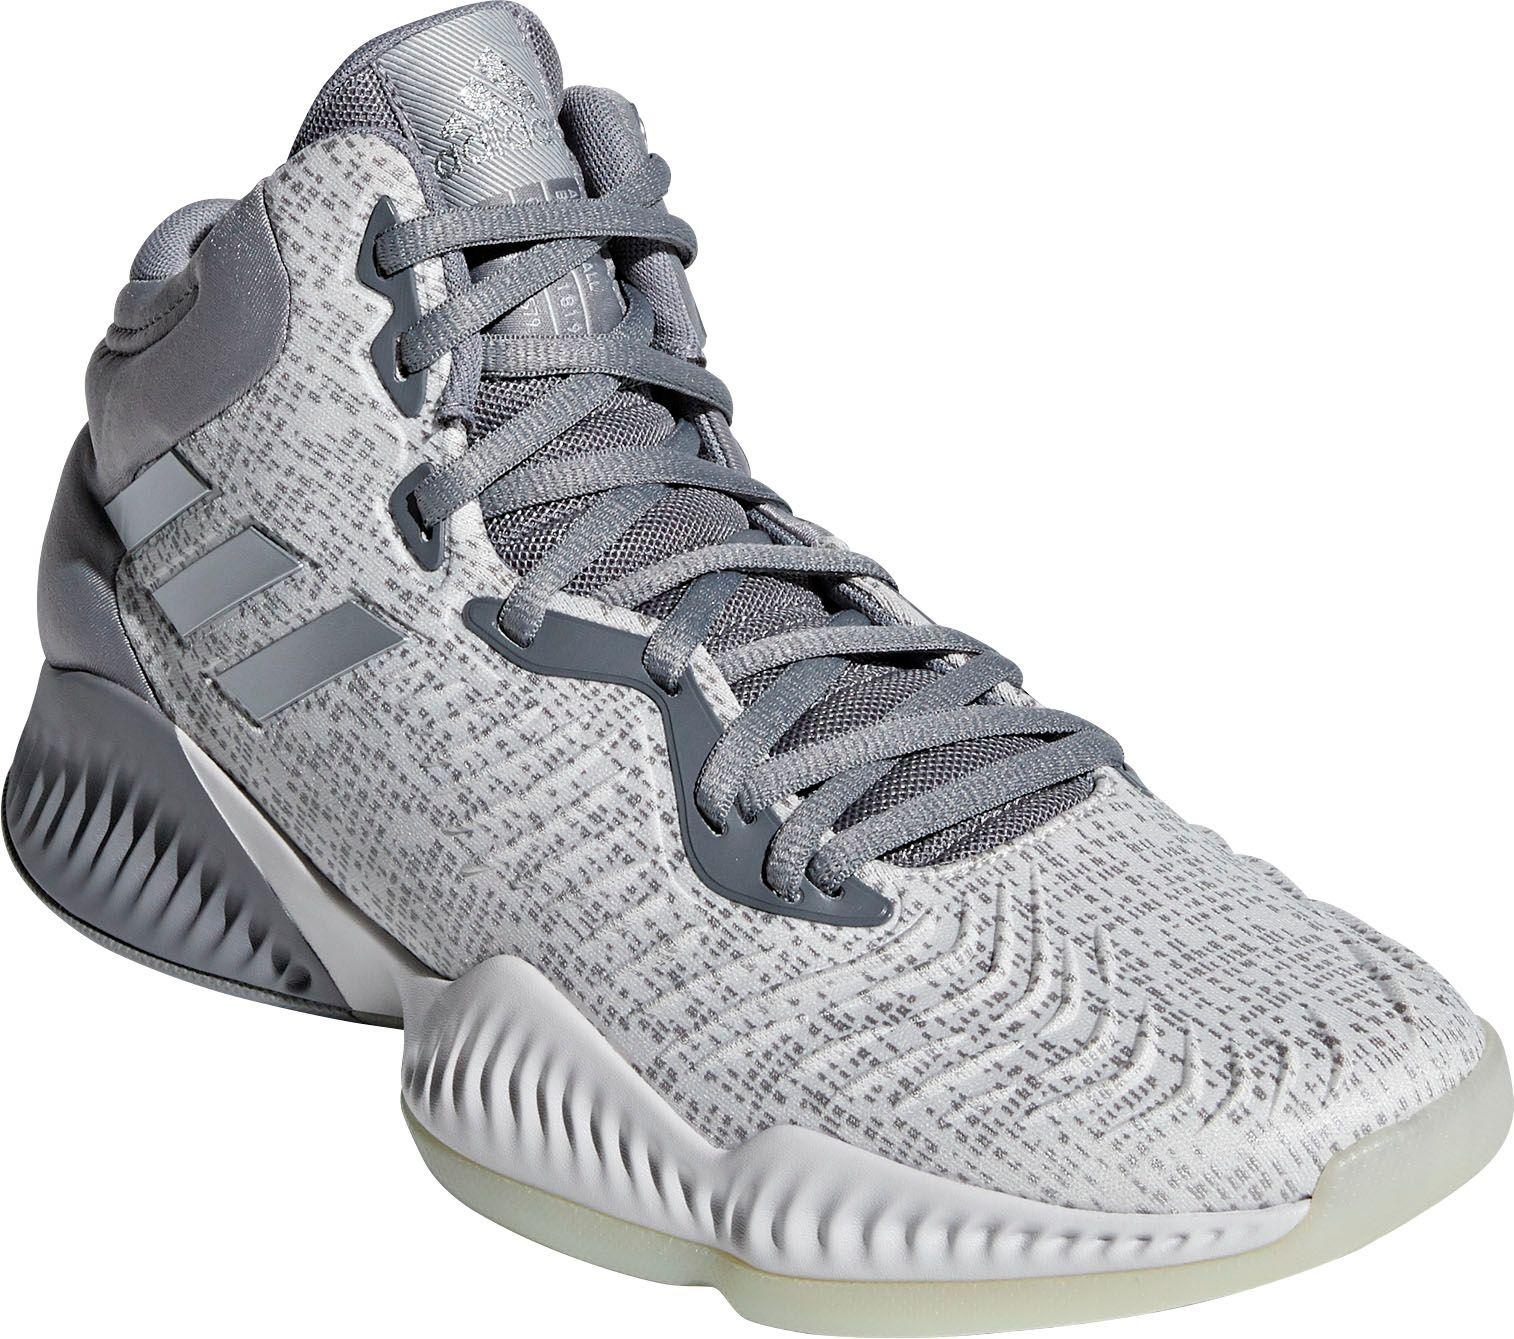 b2c4fbe14a8c3 Adidas Pro Bounce 2018 Core Black Footwear White Kixify. Lyst Adidas Mad Bounce  2018 Basketball Shoes In Gray For Men